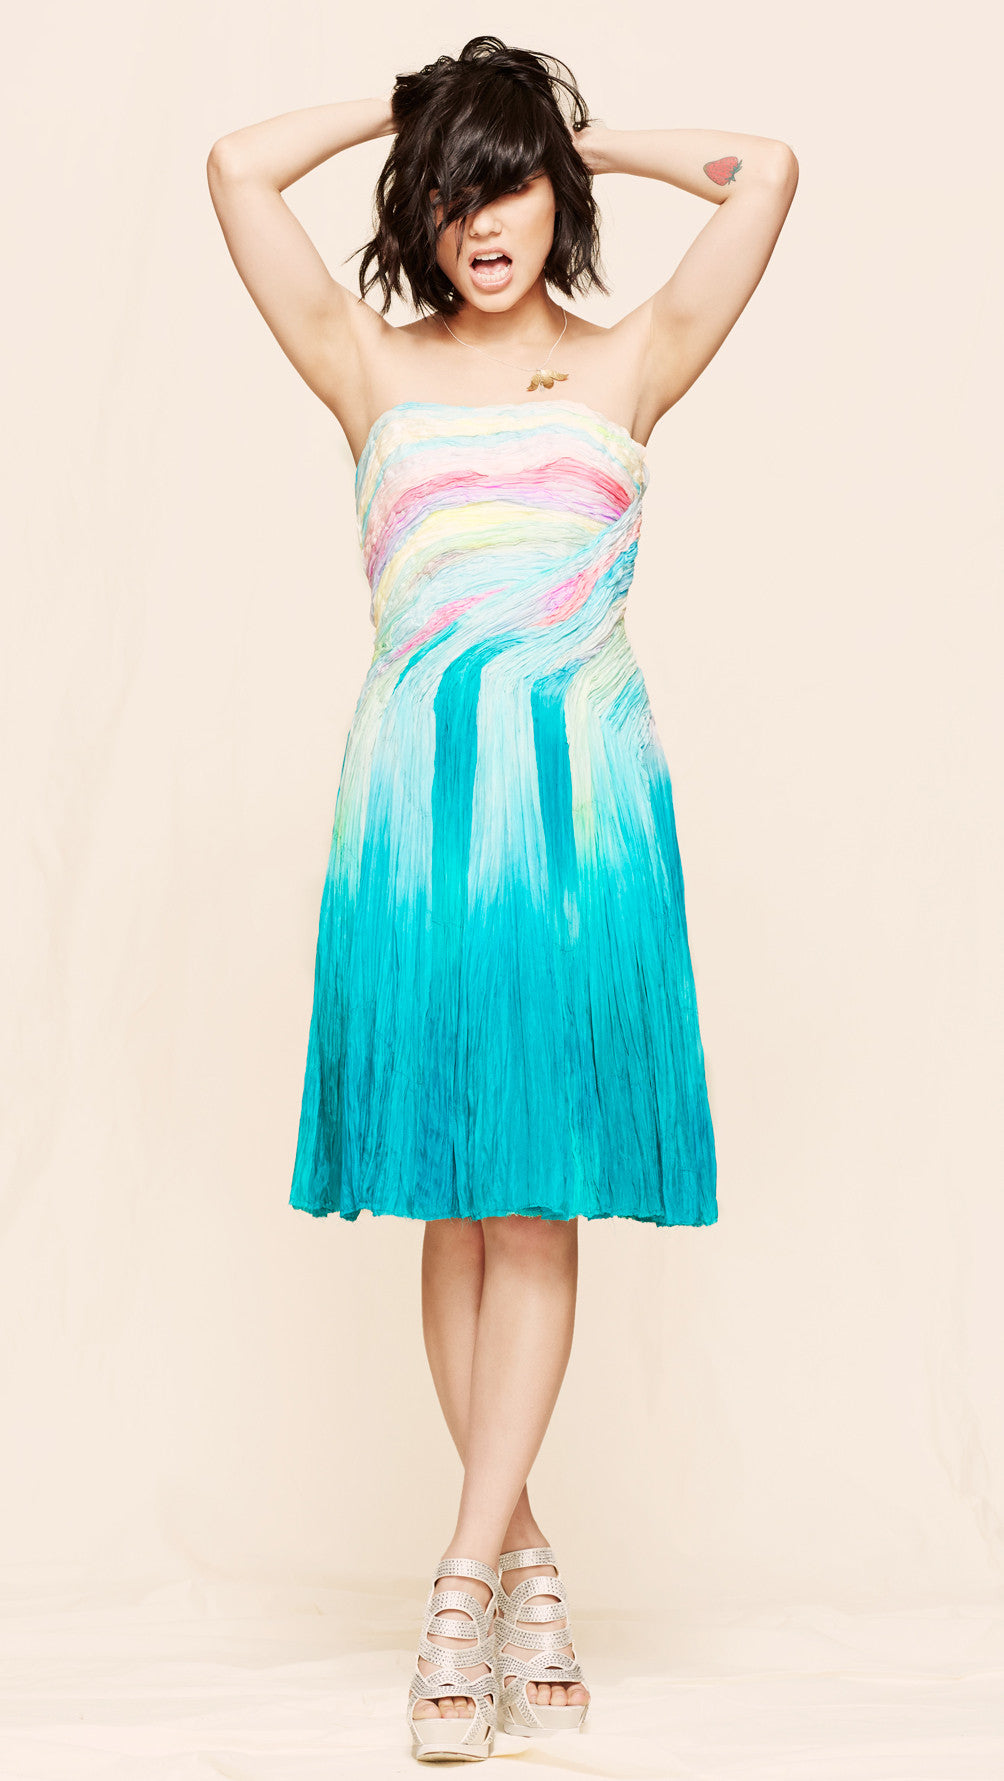 oda - cotton candy strapless dress - front view